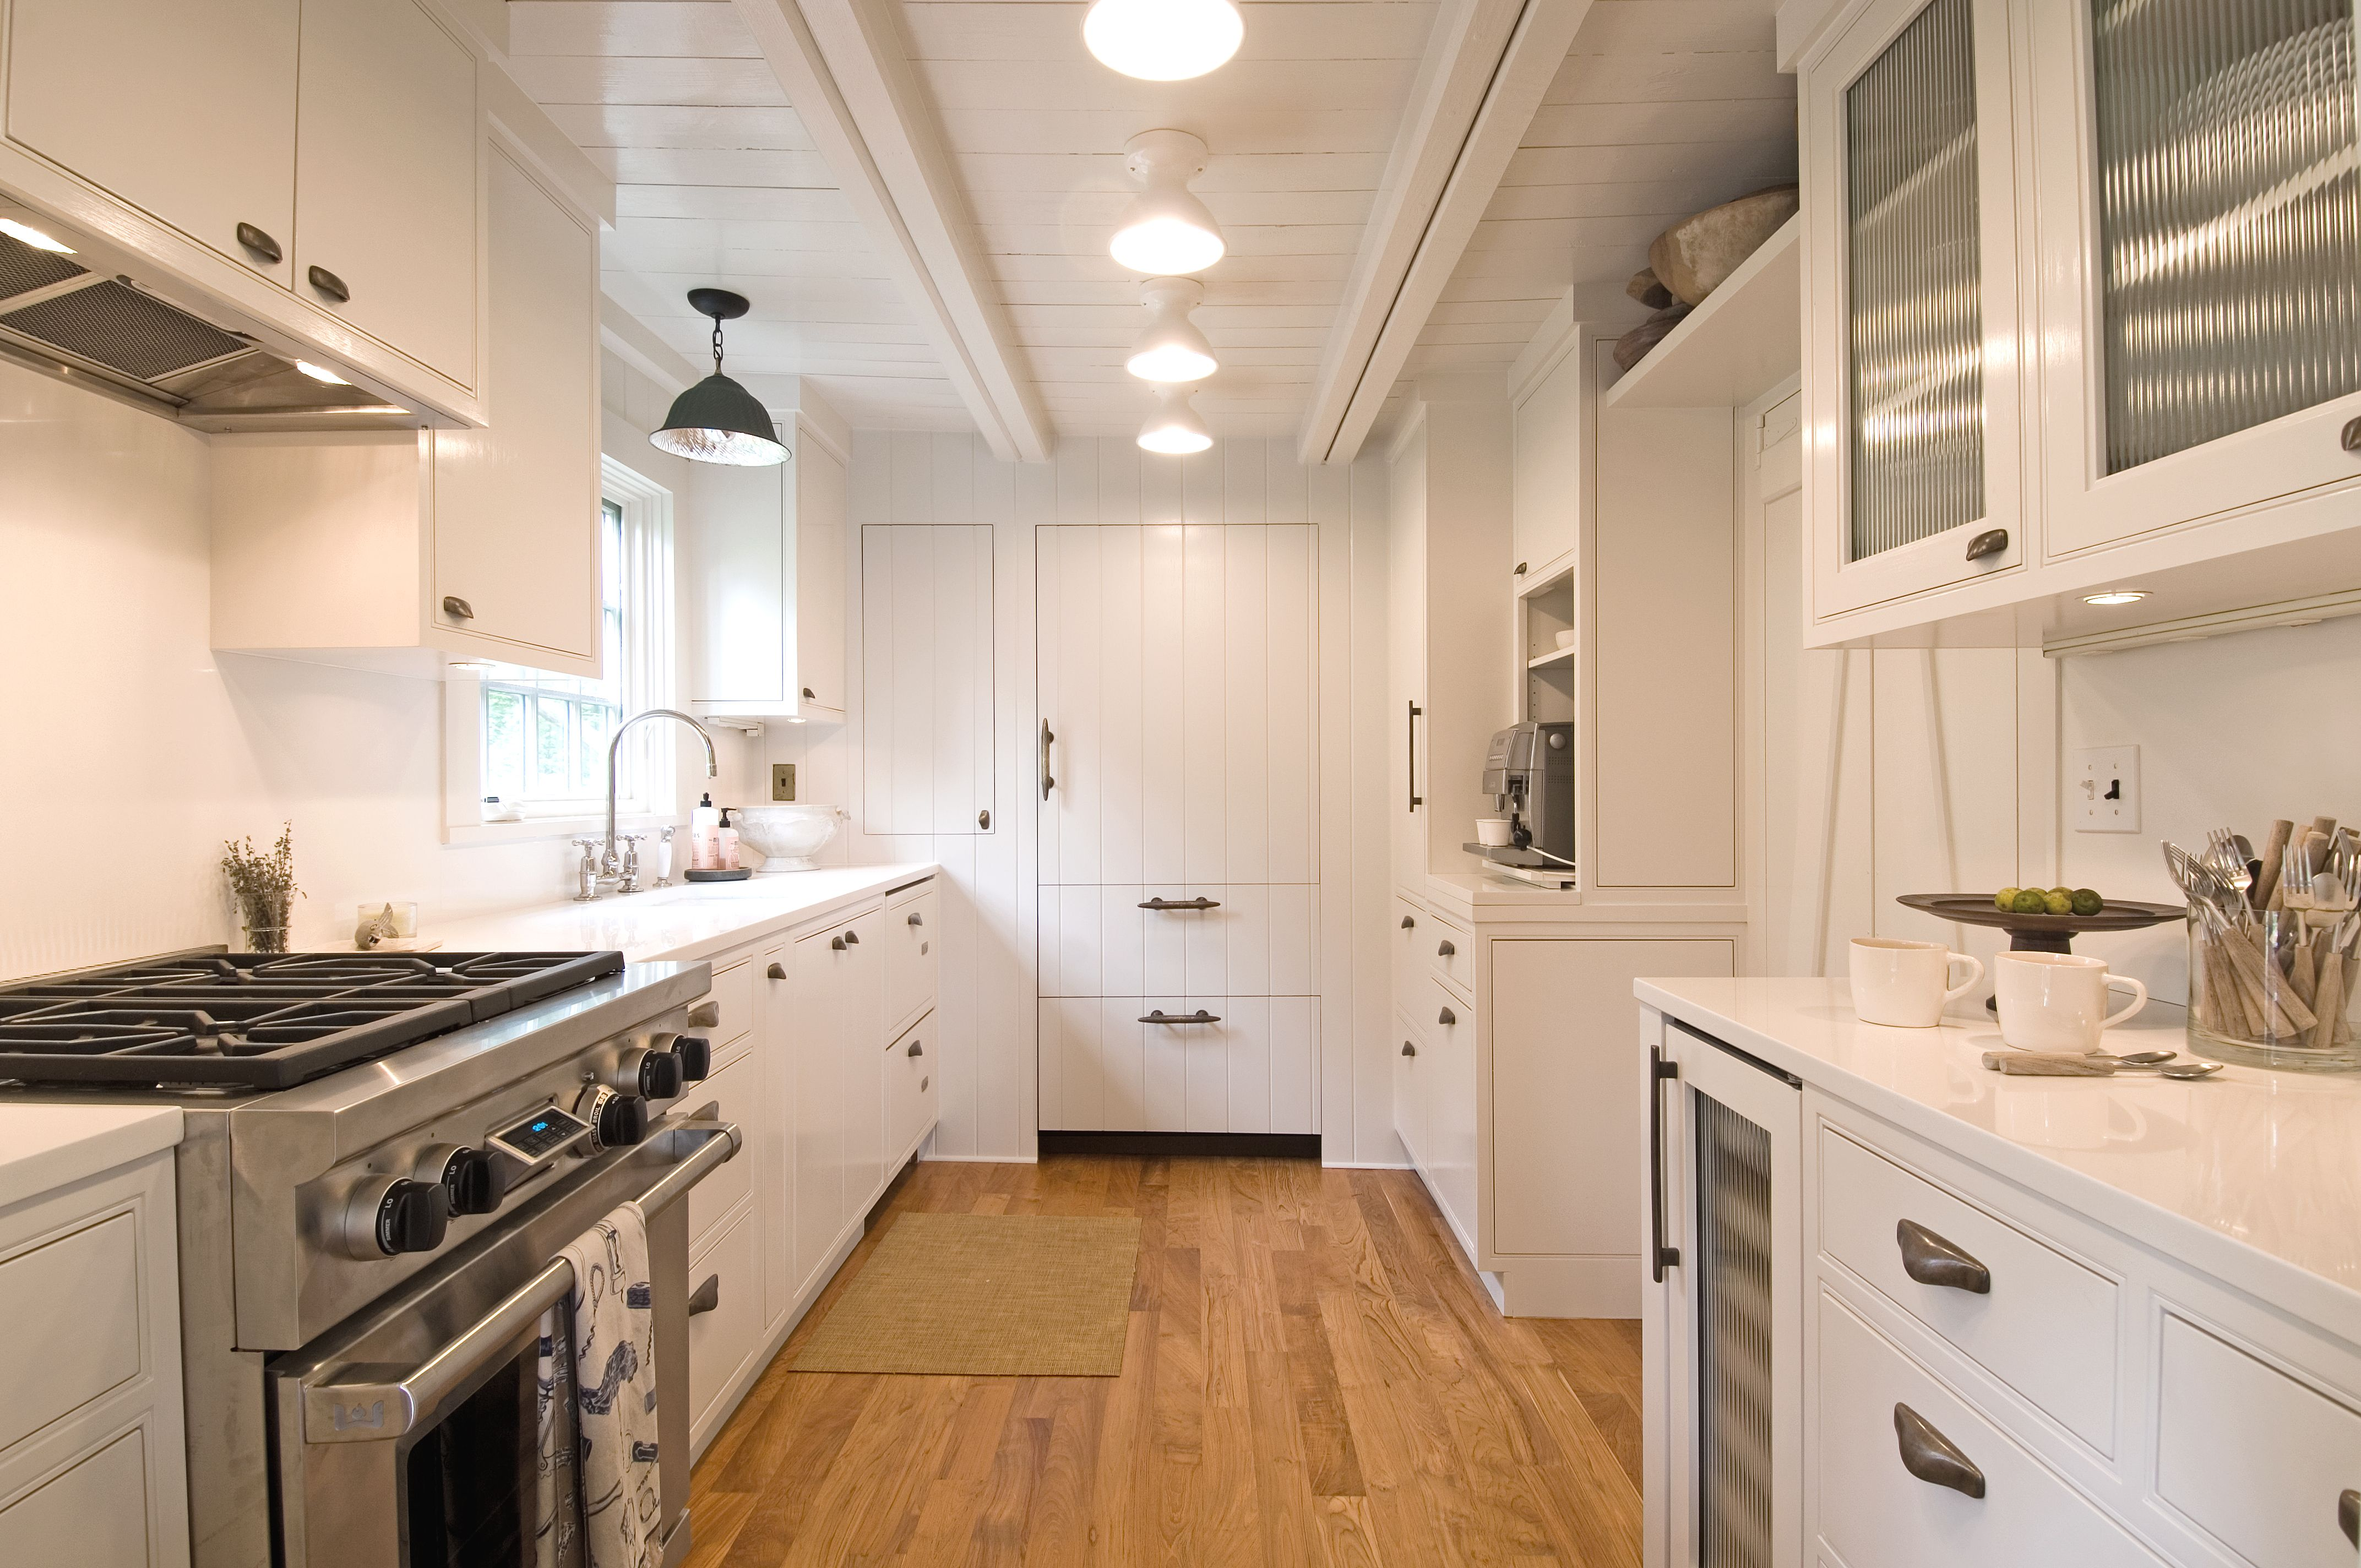 This Galley Kitchen By Hampton Design Is The Perfect Example Of A - Hamptons kitchen design